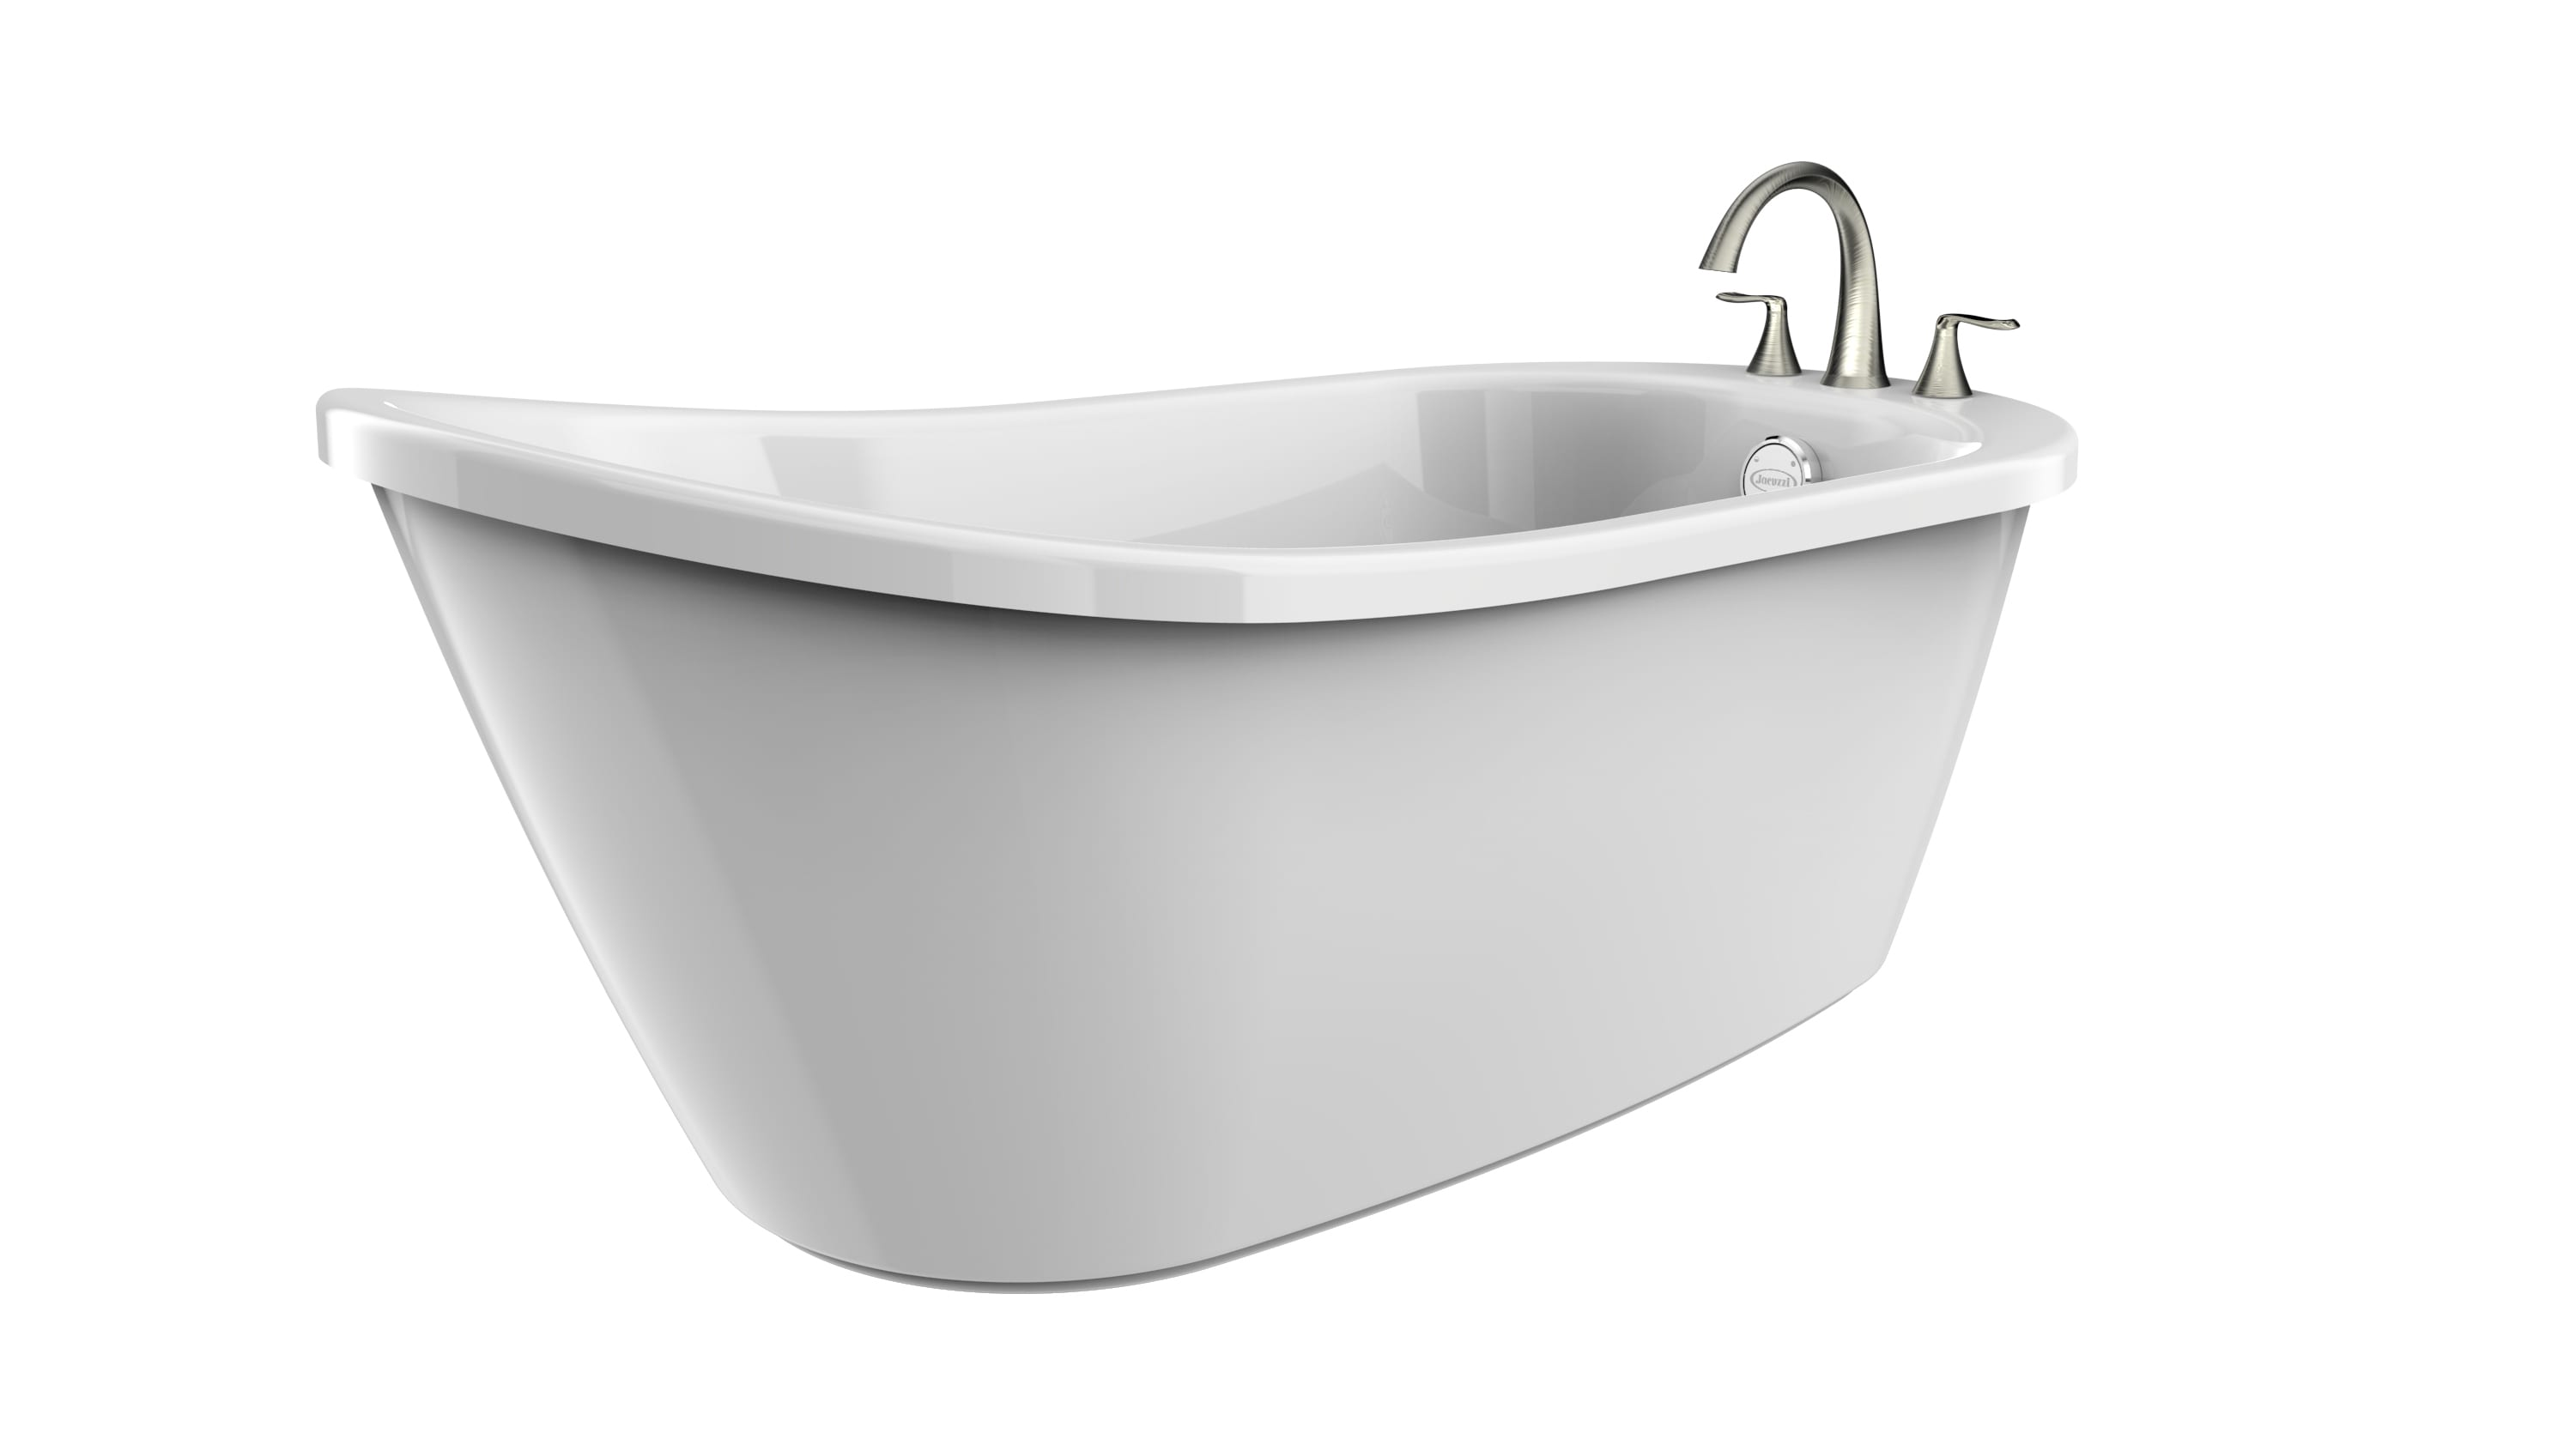 Jacuzzi Pnb5932buxxxxw White Brushed Nickel Tub Filler Piccolo 59 Whirlpool Washer Parts Diagram As Well Overflow Free Standing Soaking Bathtub With Mx22826 Faucet And Reversible Drain